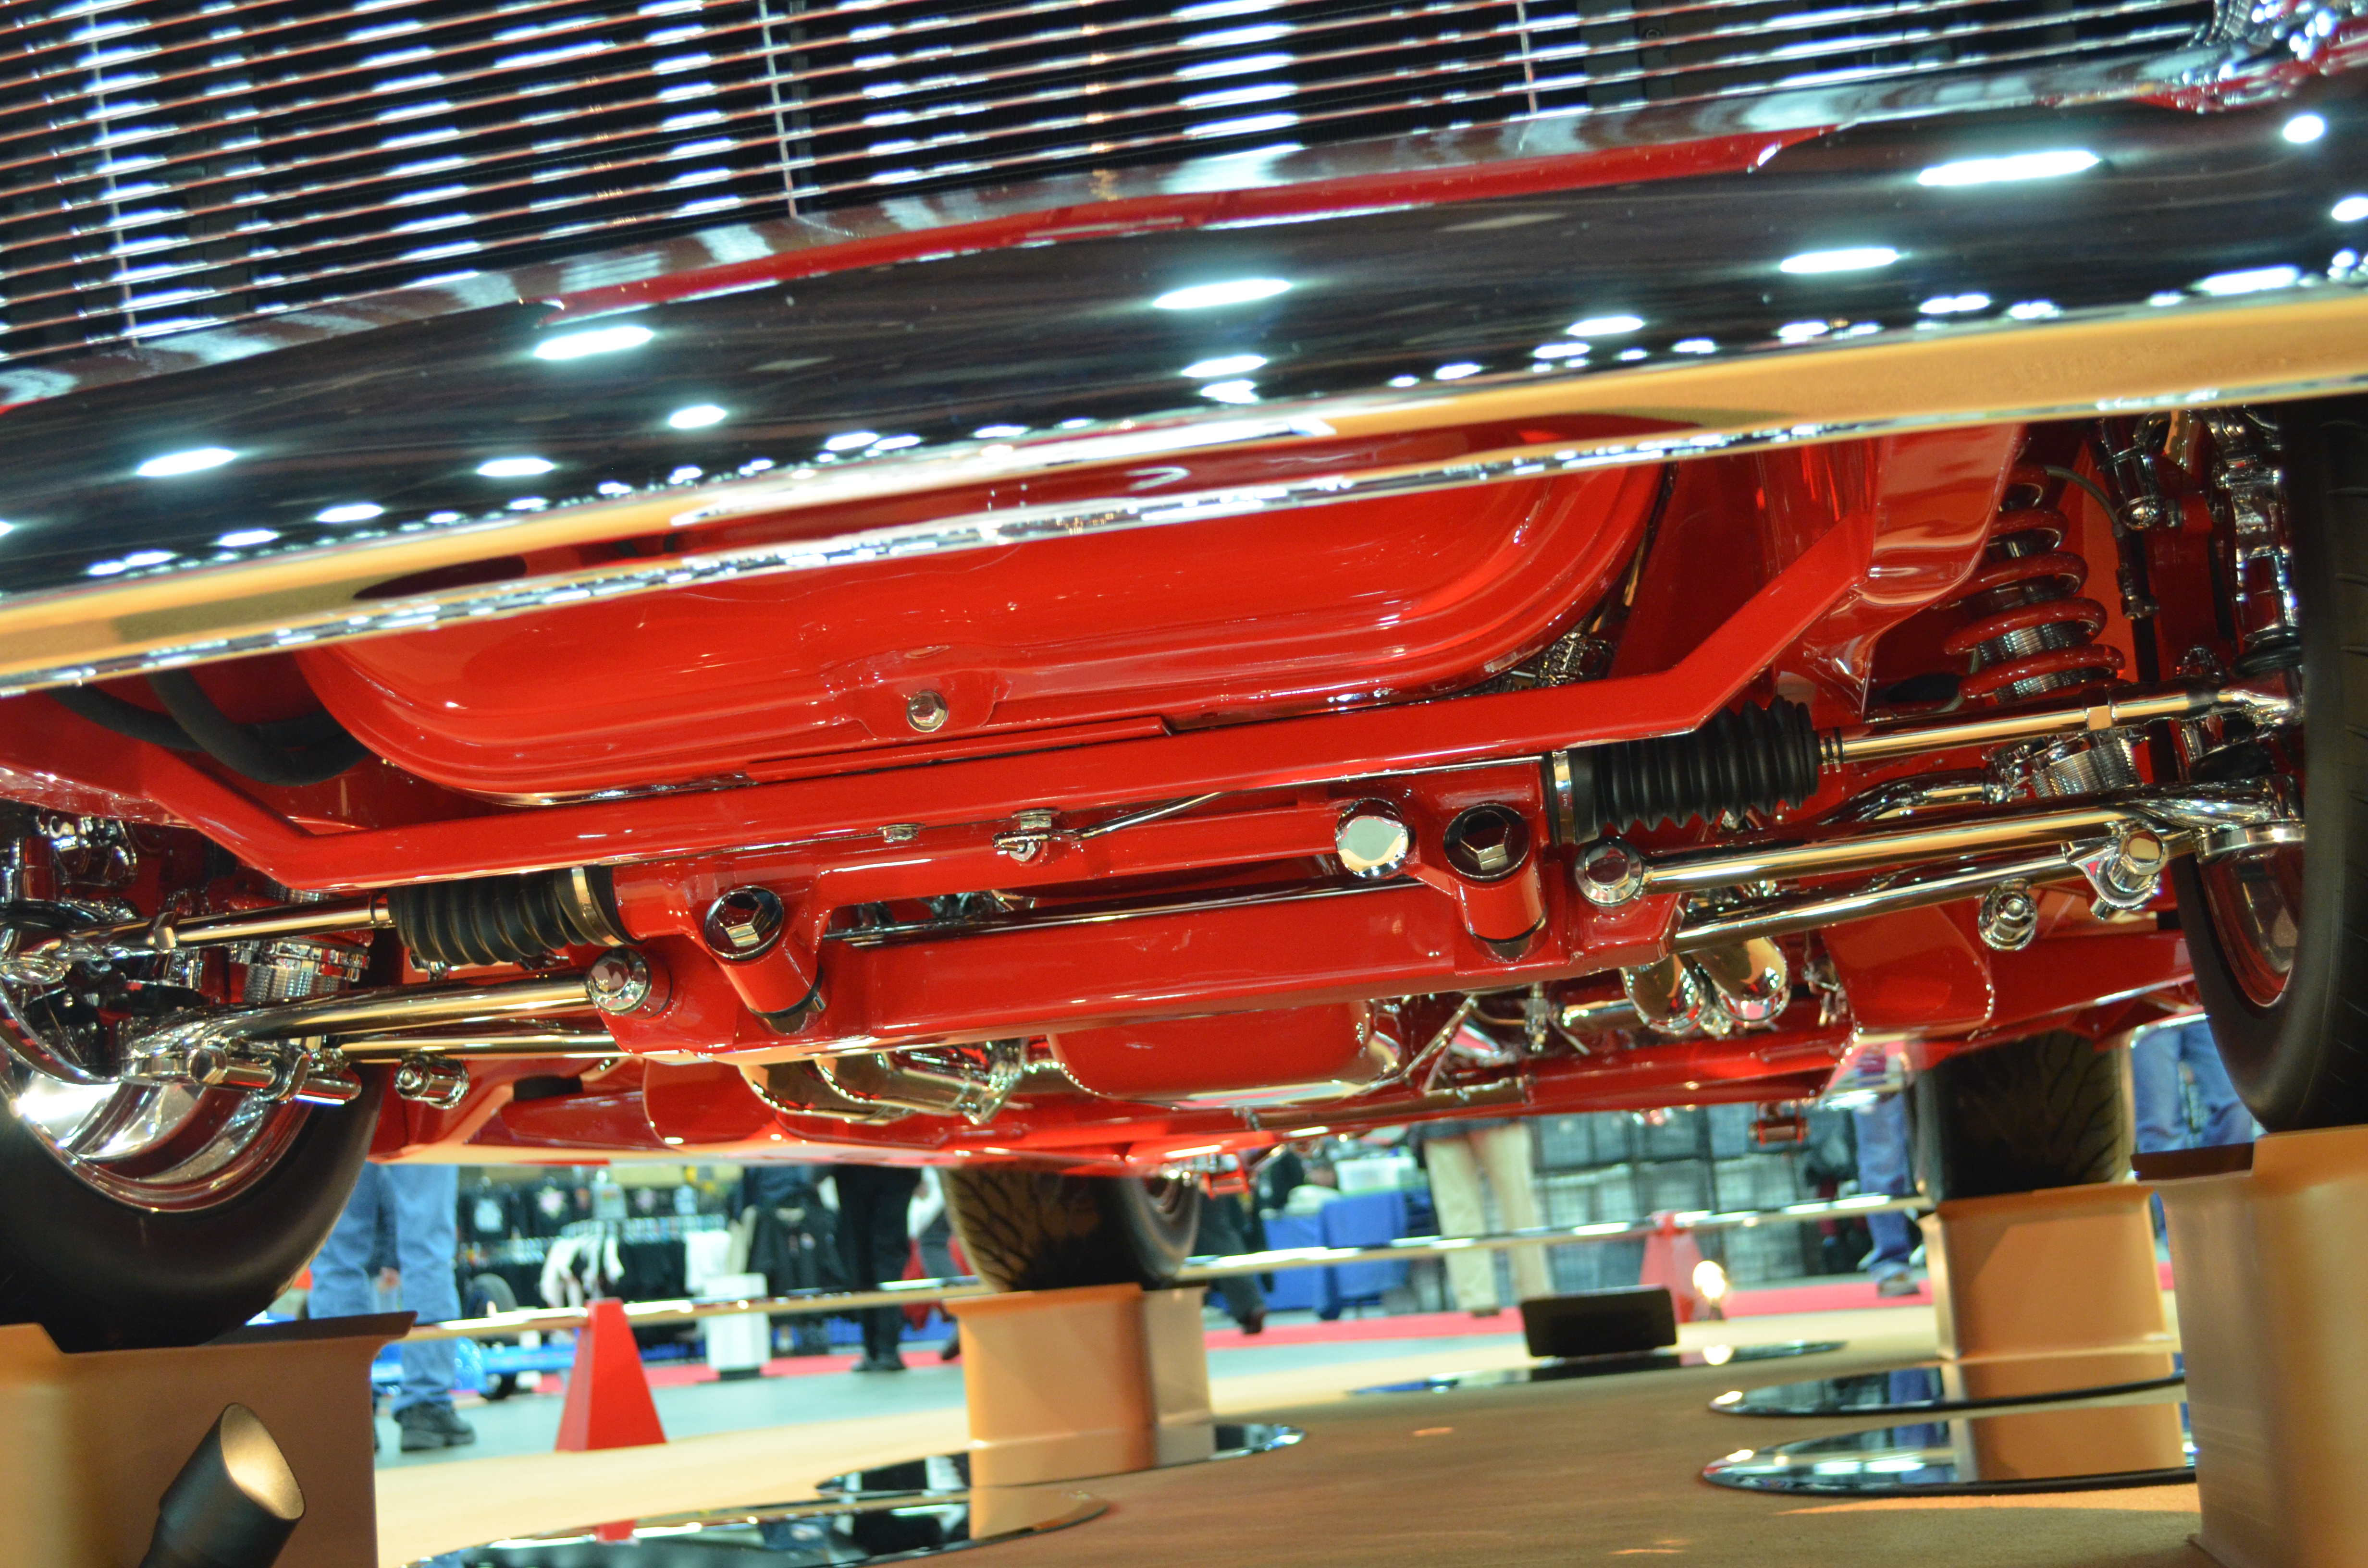 Suspension An Introduction To Harnessing Your Engine Power - Car show wheel stands